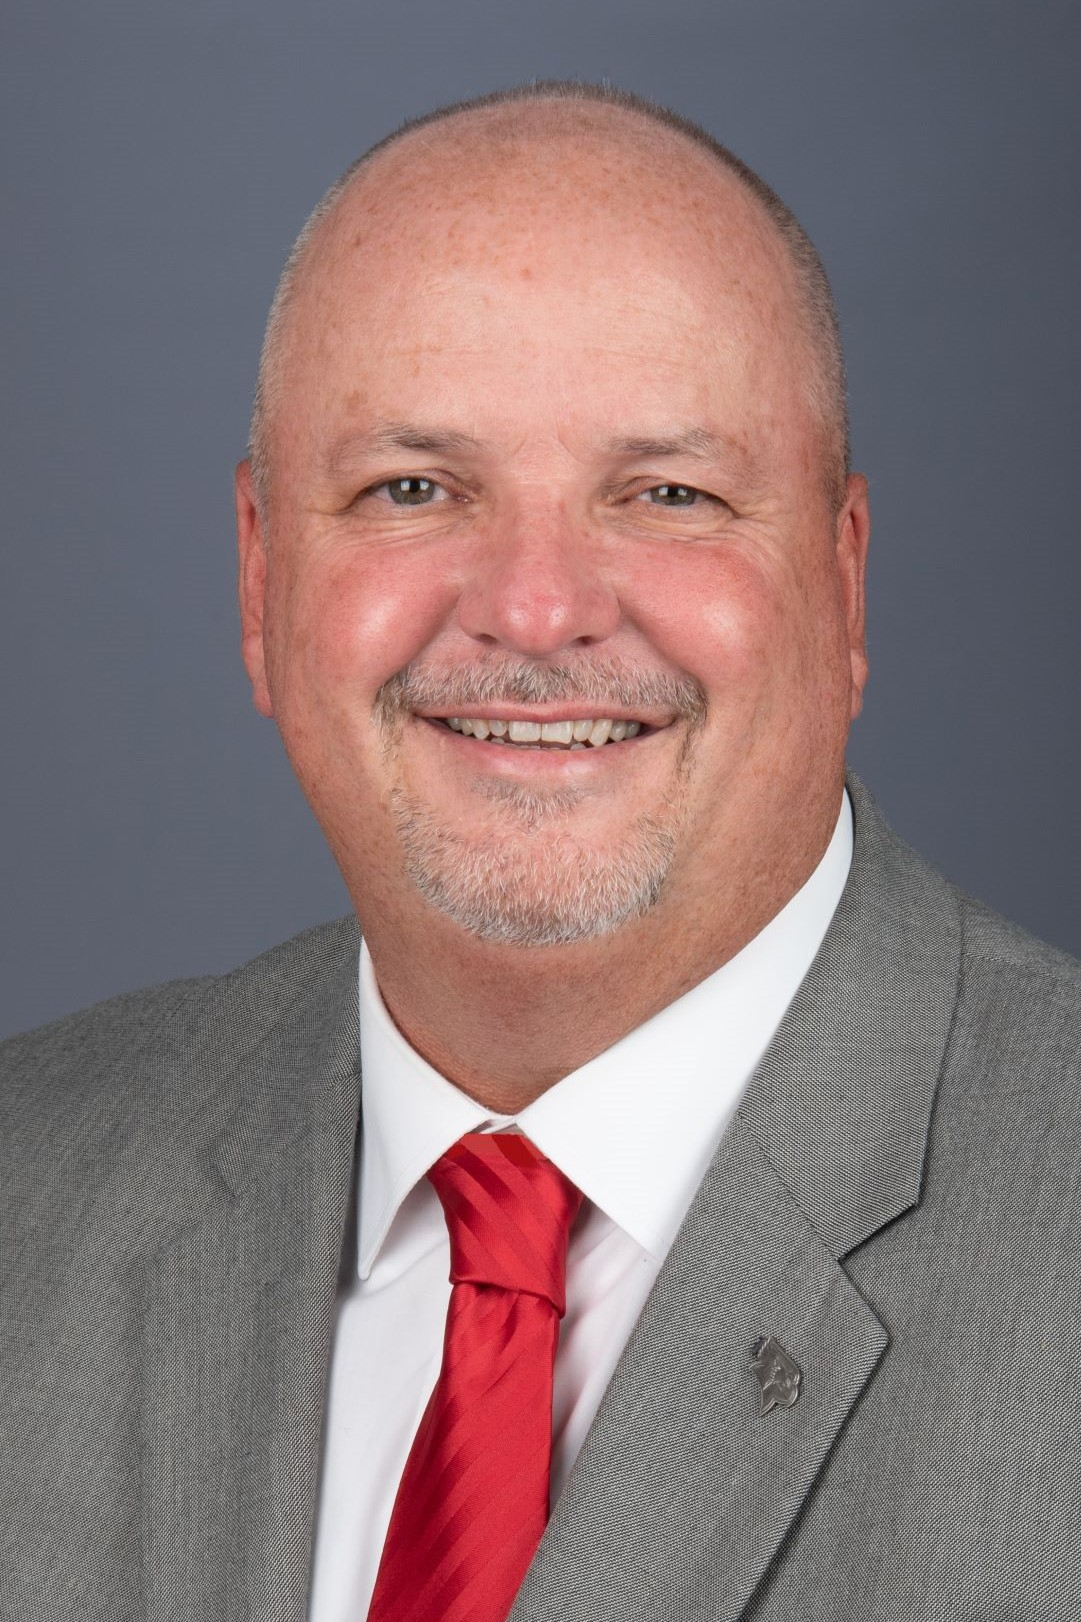 headshot photo of Brent Beggs